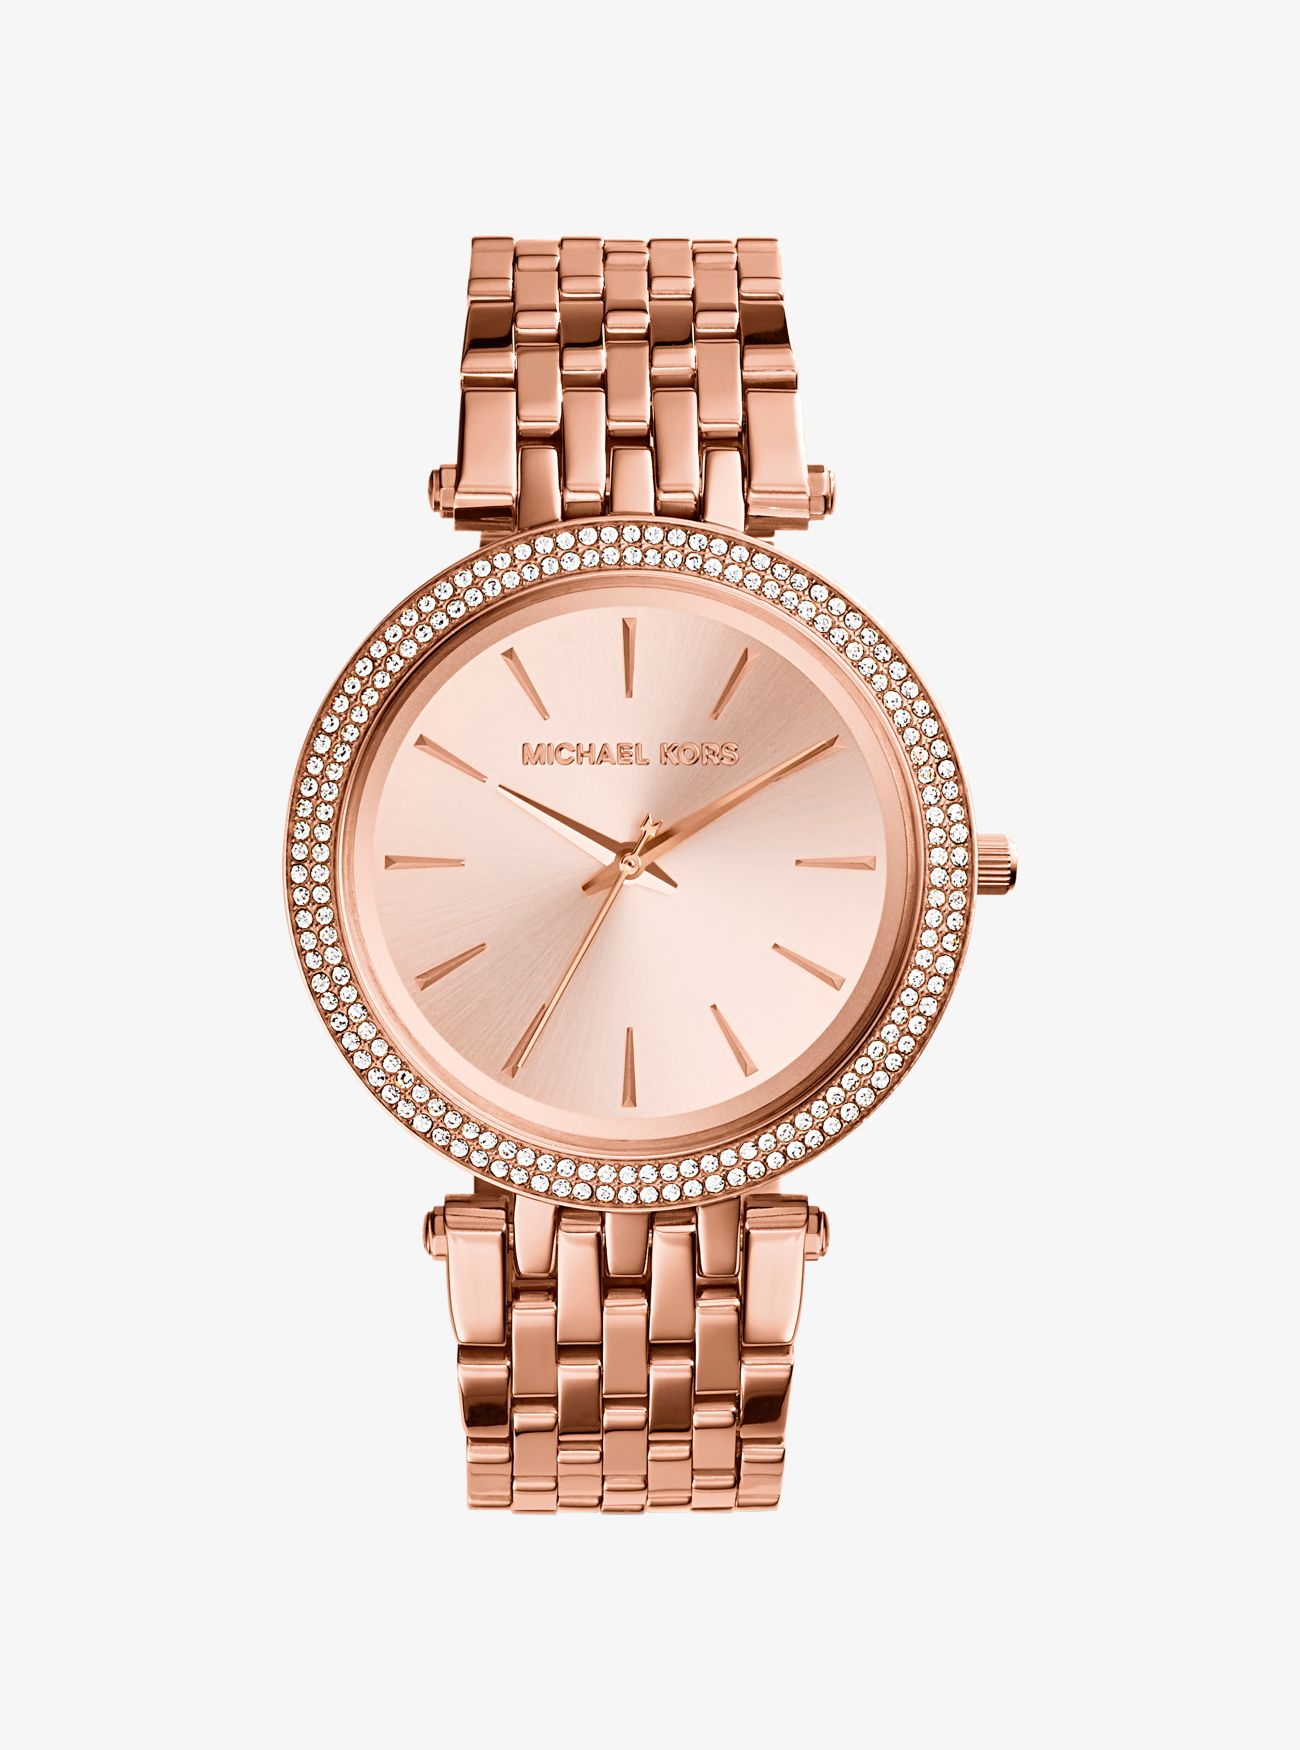 is watch watches r us michael gold kors rose bradshaw tone oversized